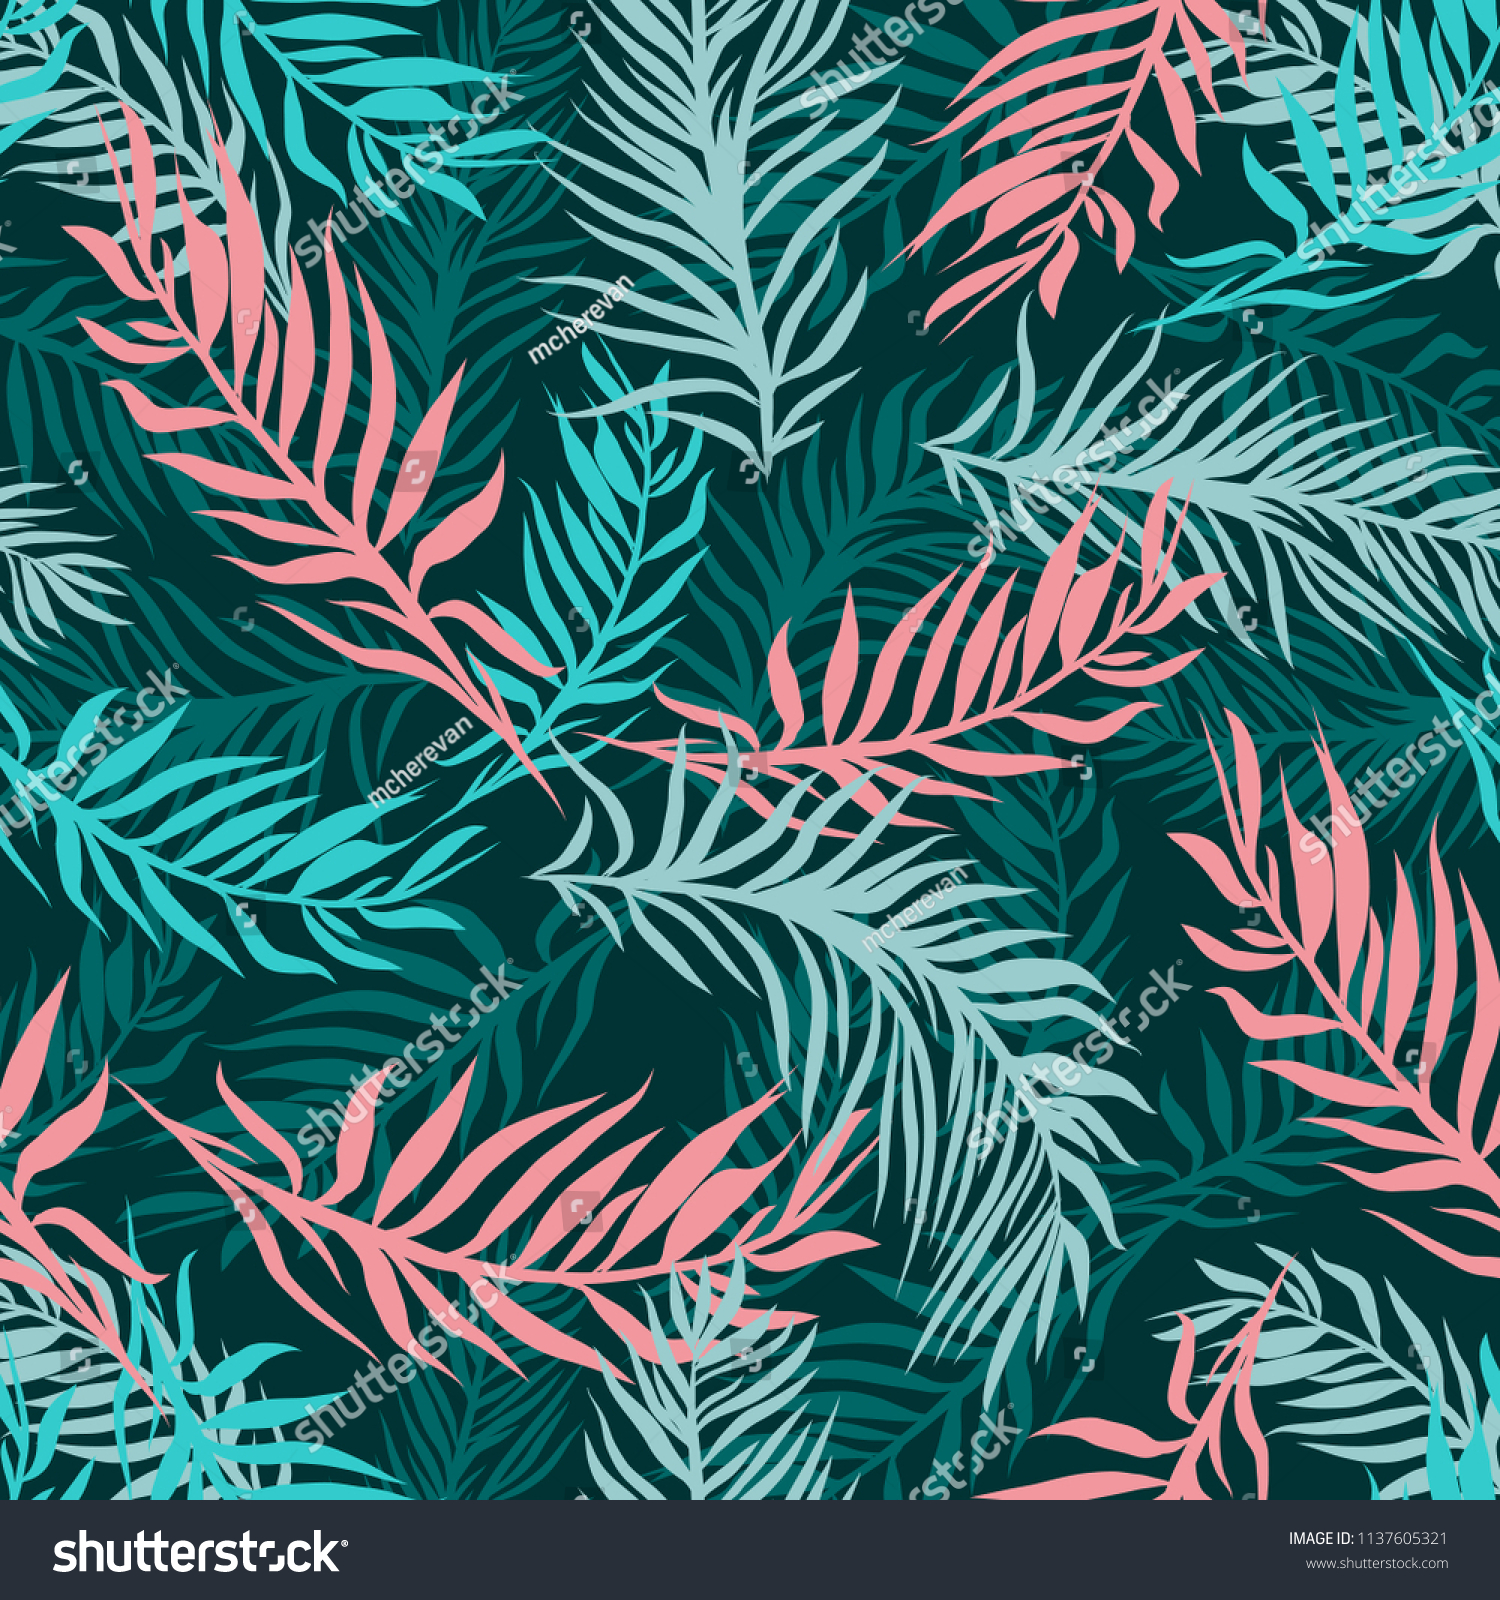 Exotic Leaves, Rainforest Plants Background Seamless Hand Drawn Tropical Pattern